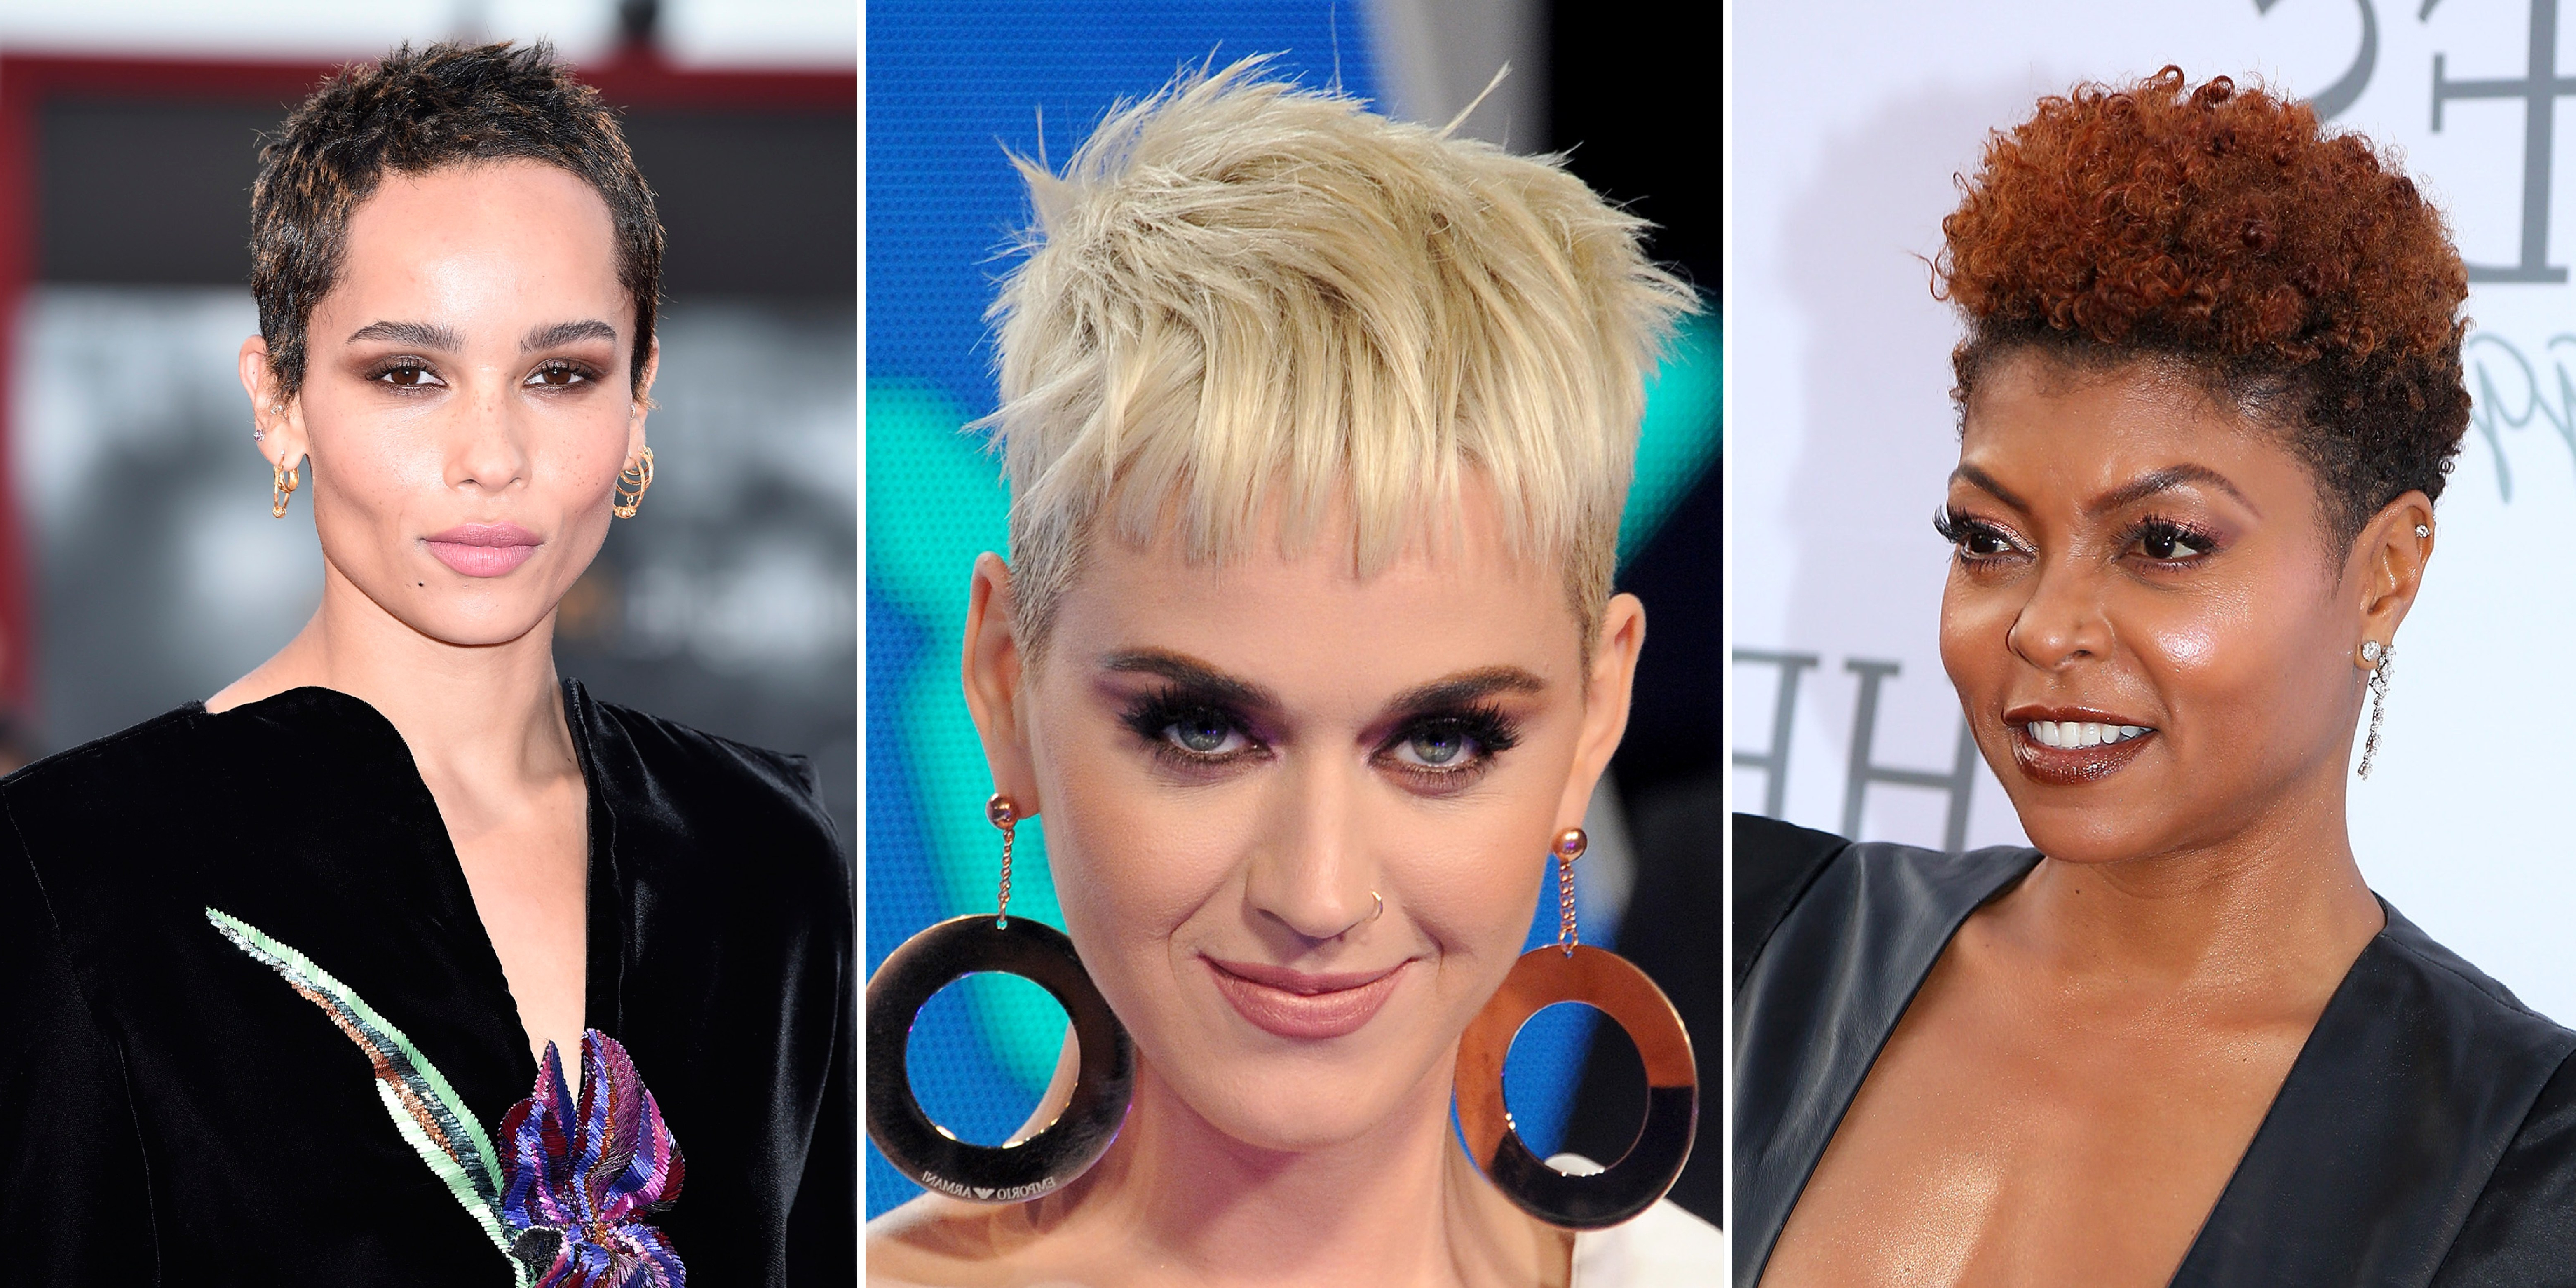 12 Pixie Cut And Hairstyle Ideas For 2017 — Best Short Celebrity With Regard To Sleeked Down Pixie Hairstyles With Texturizing (View 1 of 20)